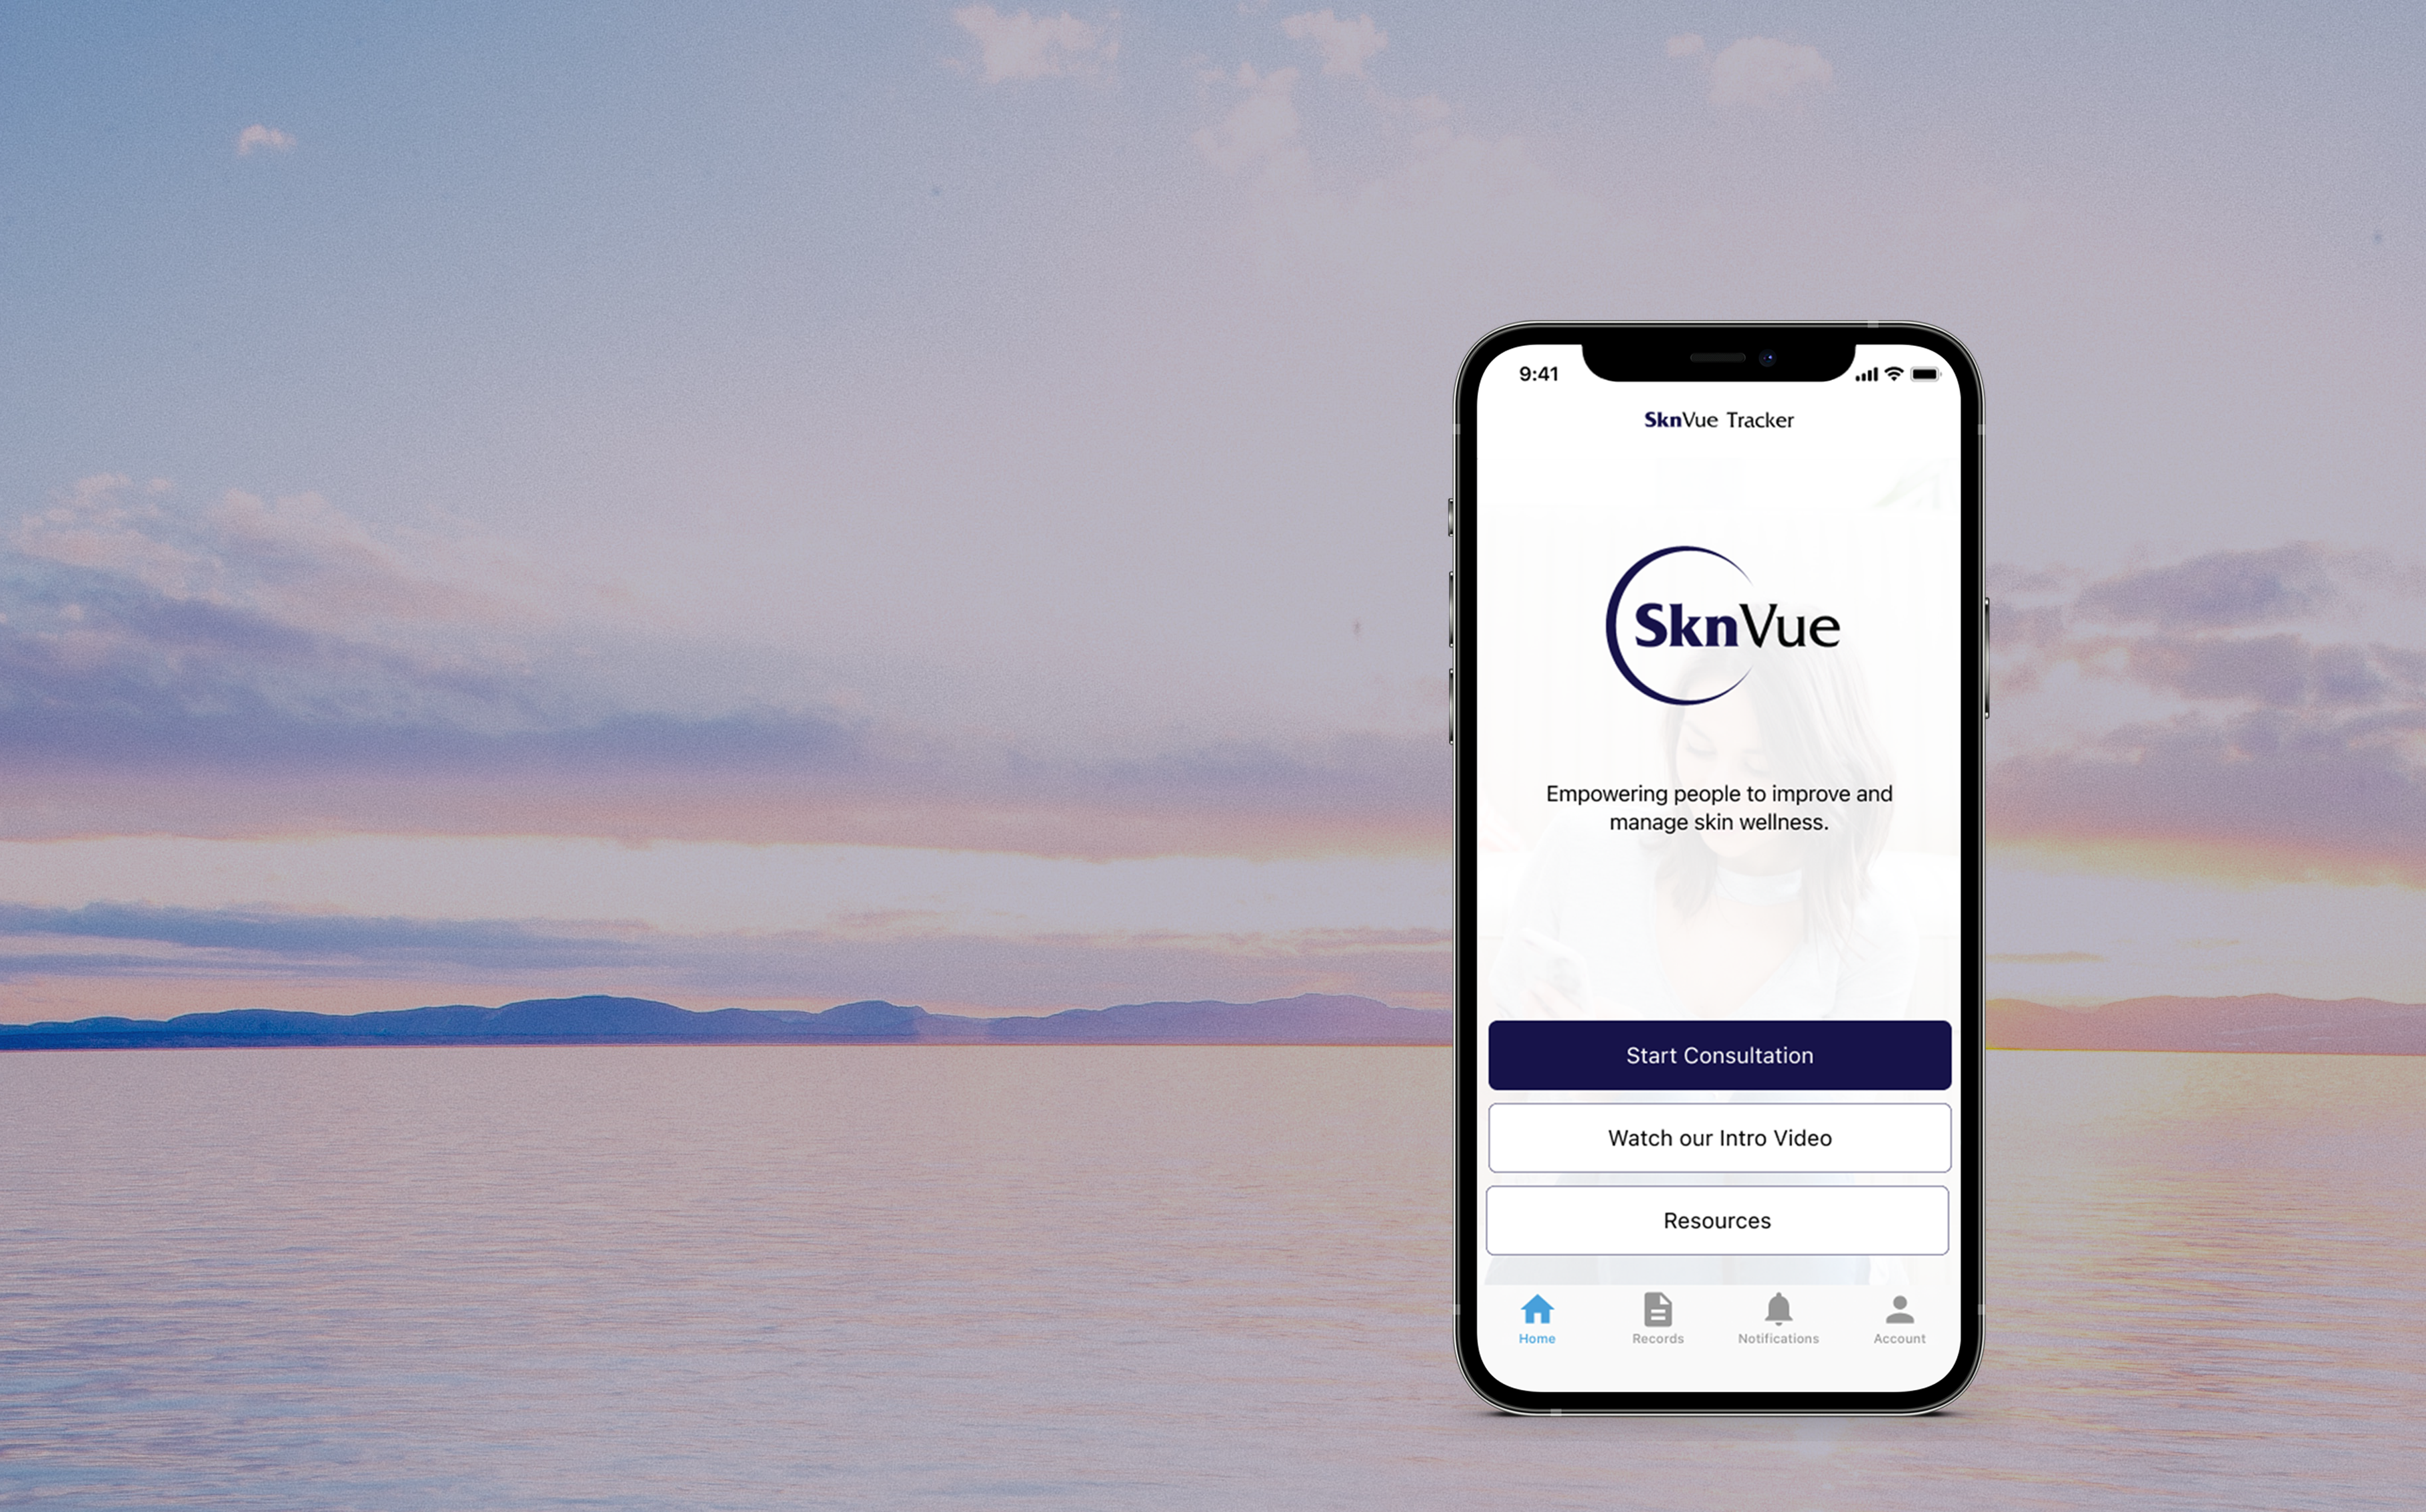 SknVue, MetaOptima partner to create game-changing mobile app to promote early detection of skin cancer